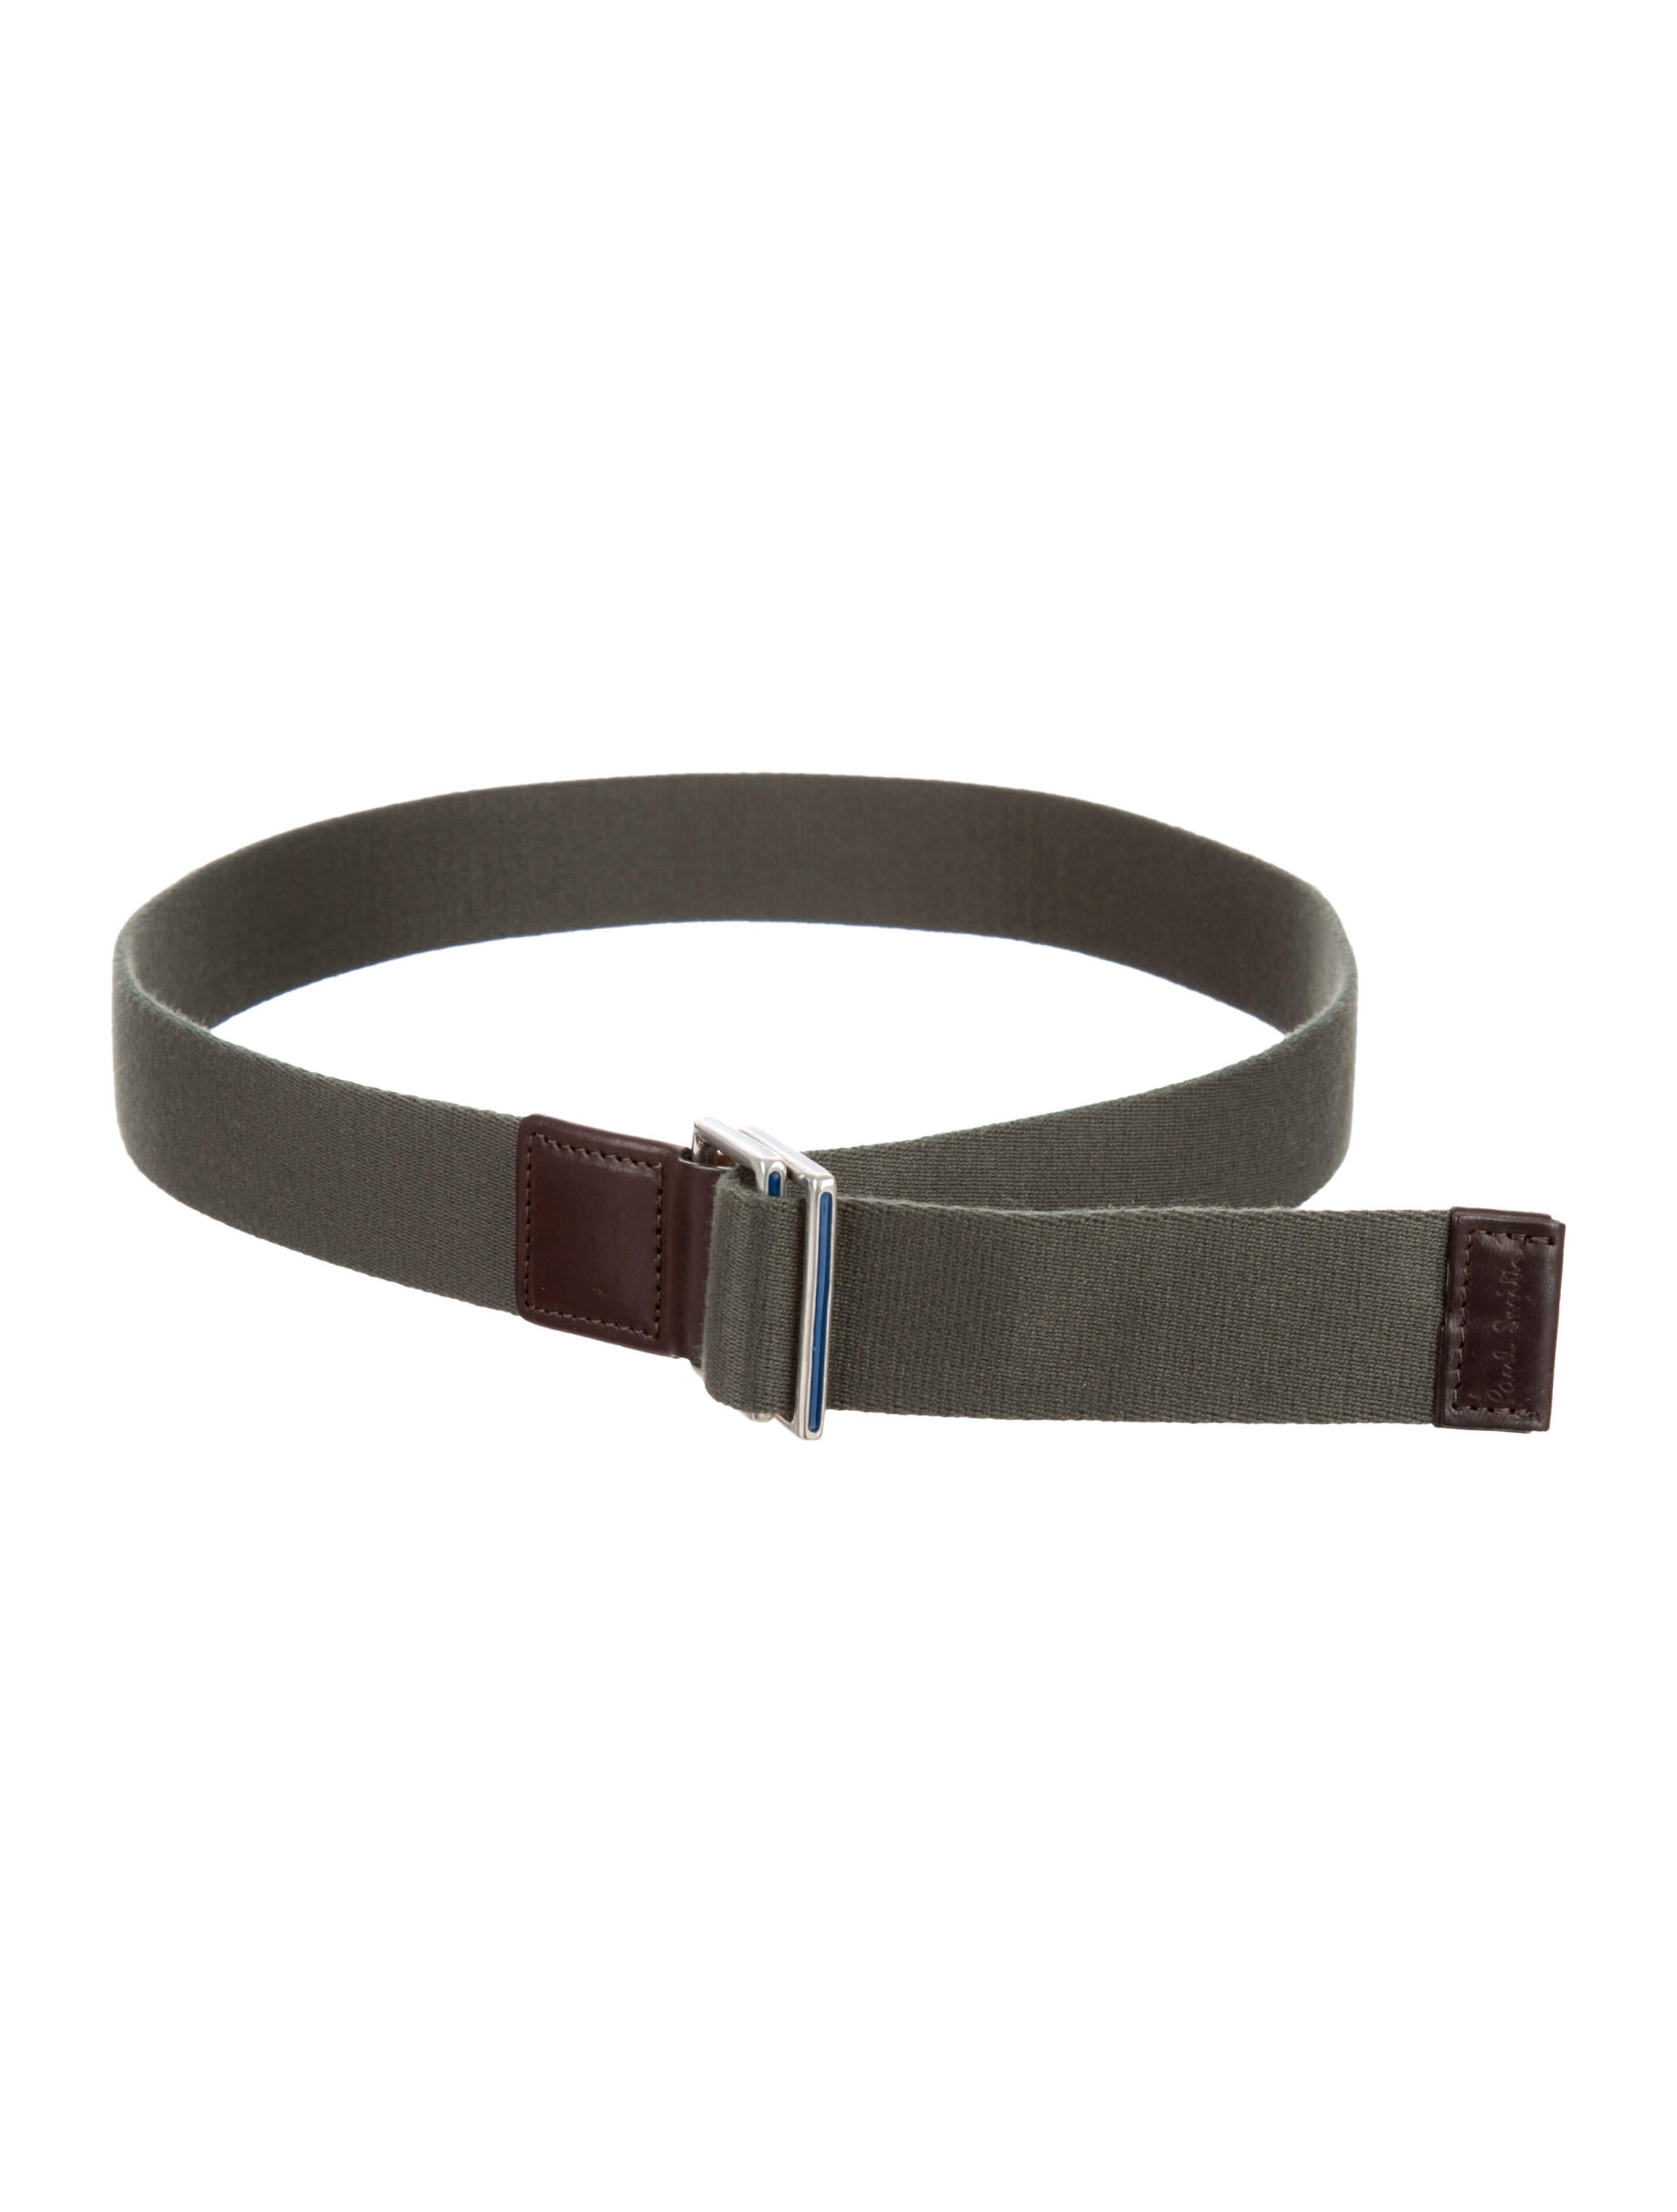 paul smith canvas leather trimmed belt accessories